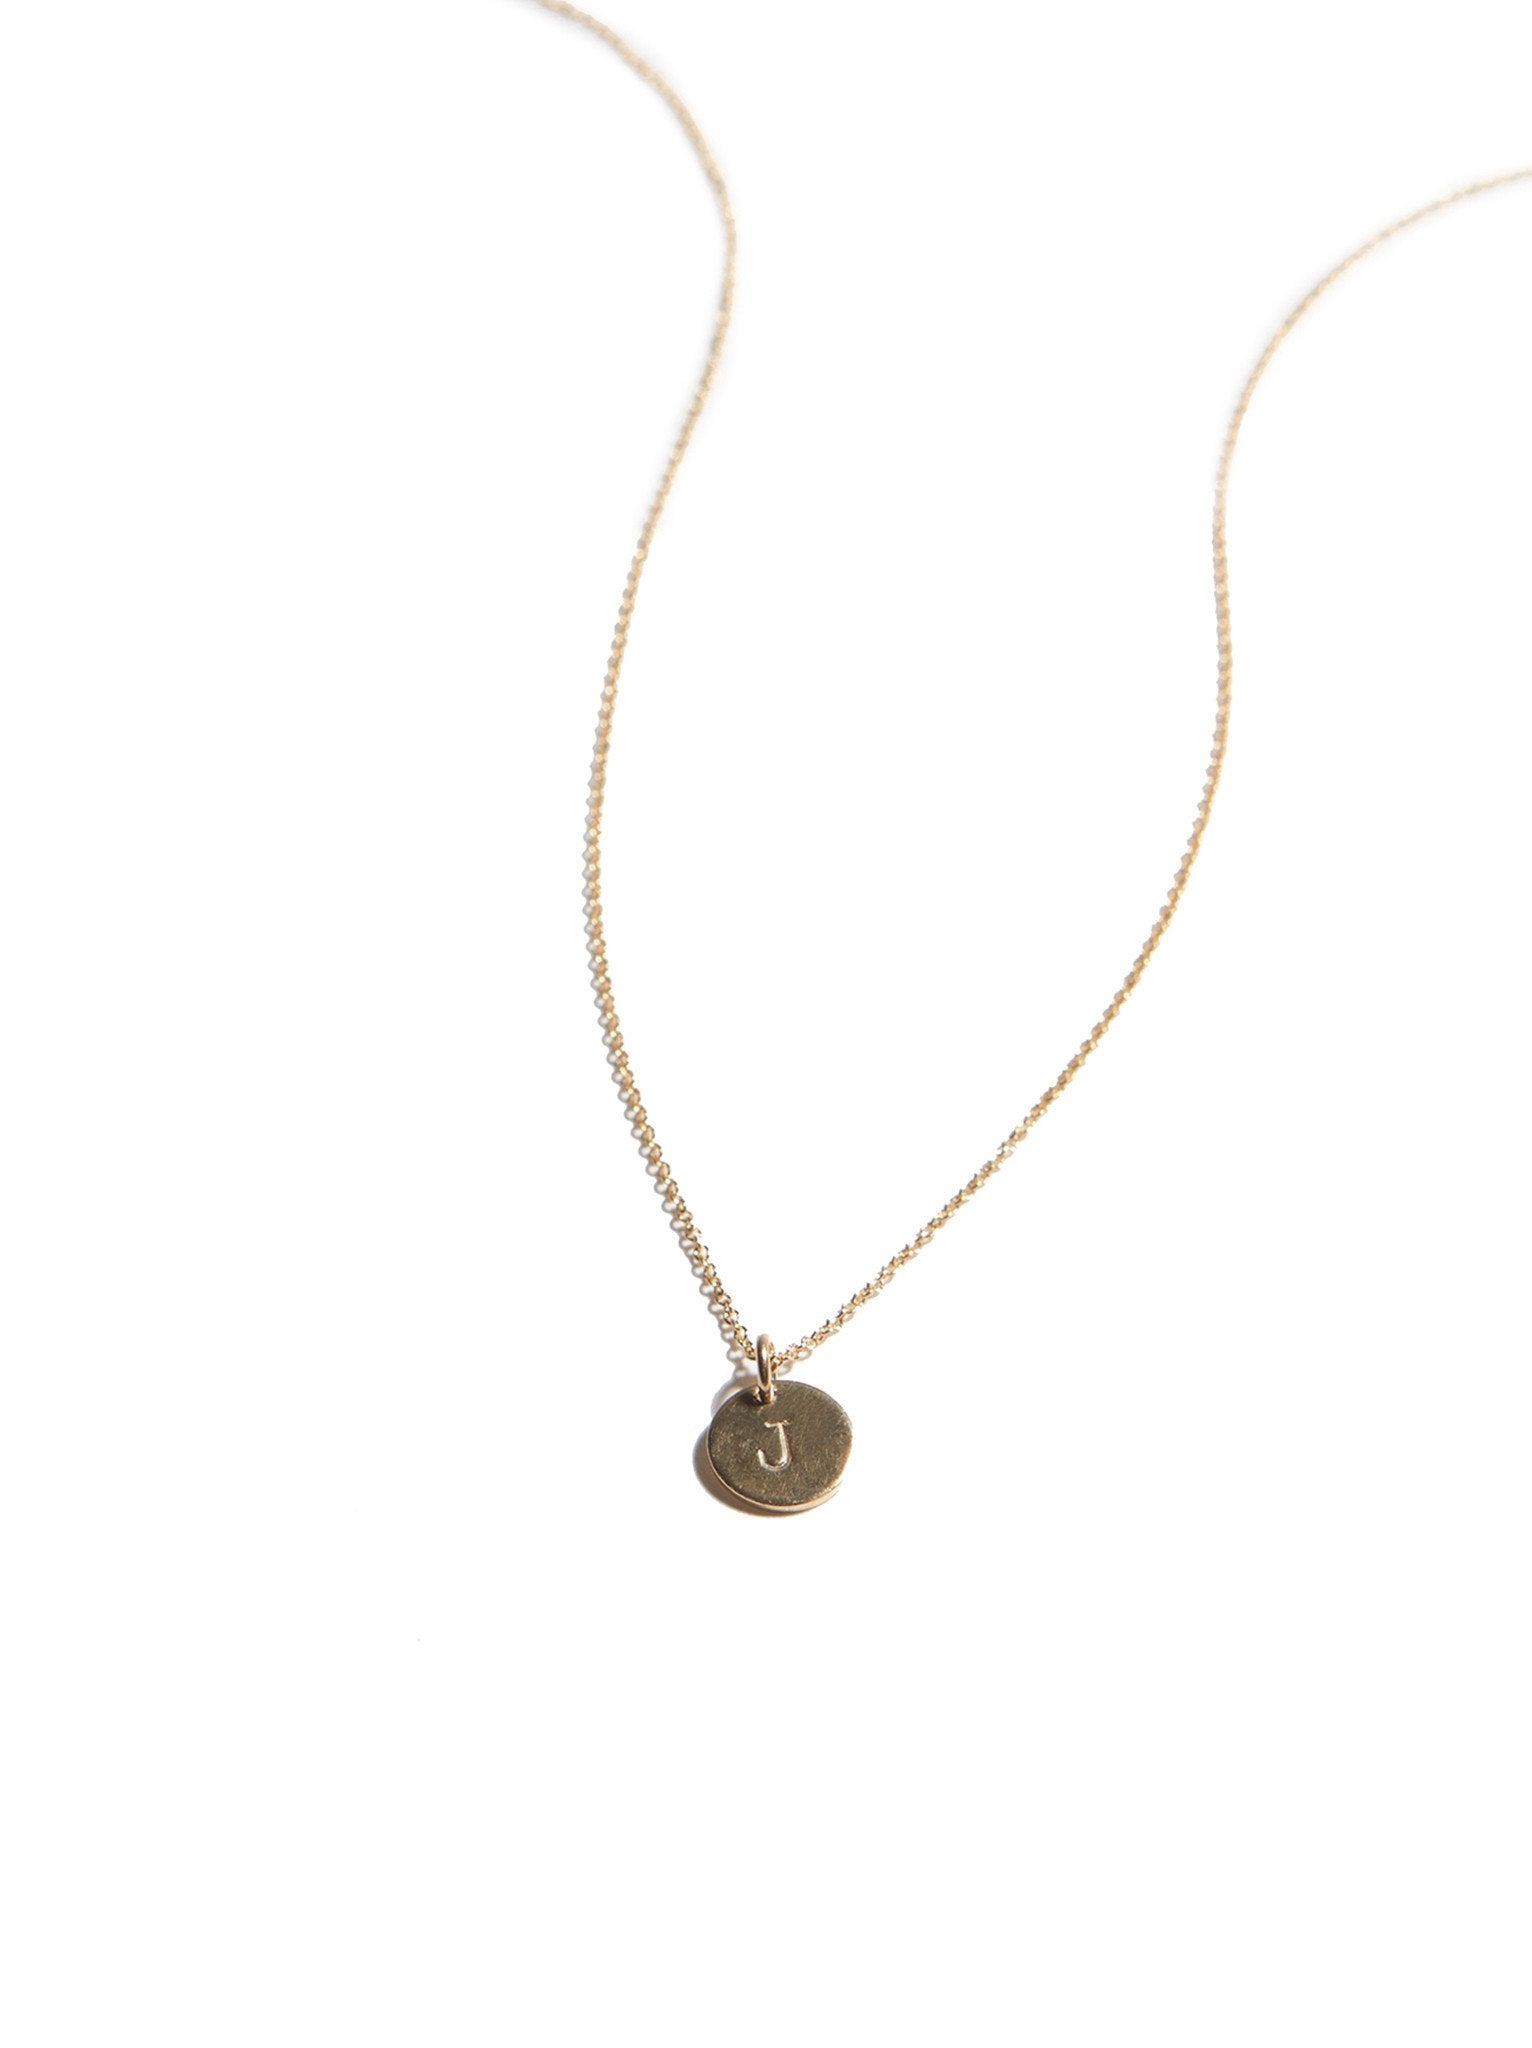 Mini Tag Necklace - Initial